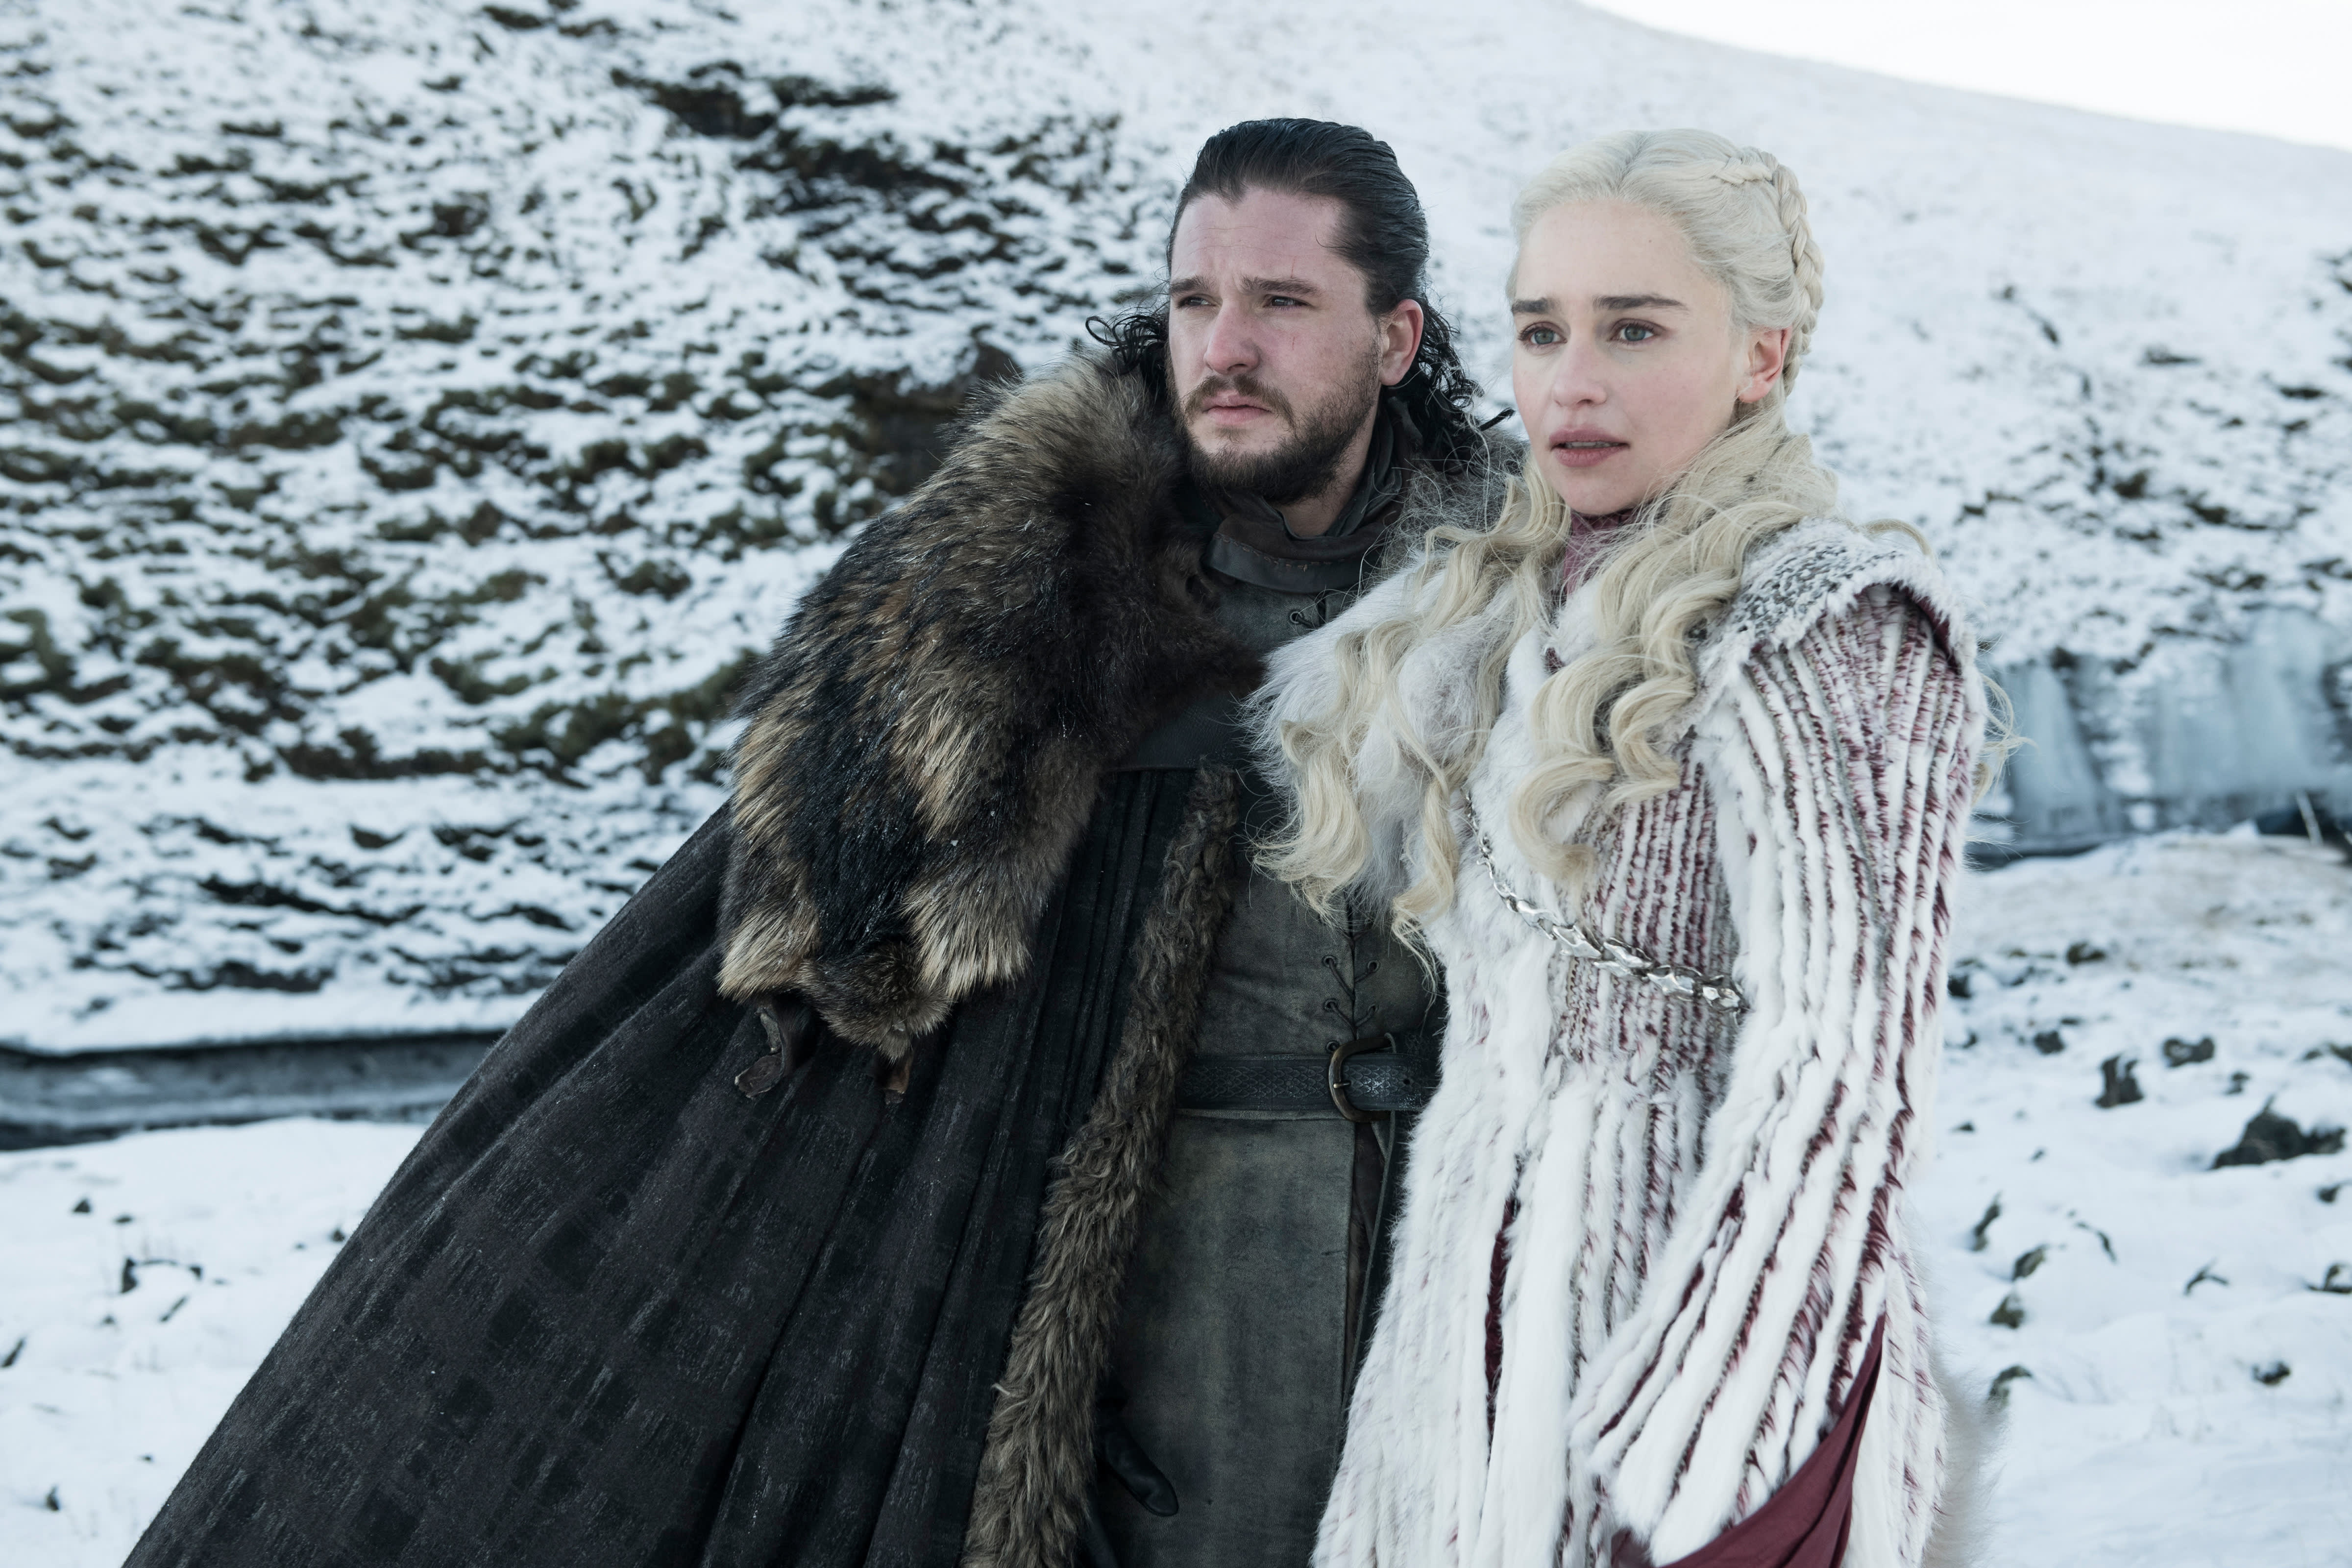 'Game of Thrones' hits record viewership in series finale despite fan backlash